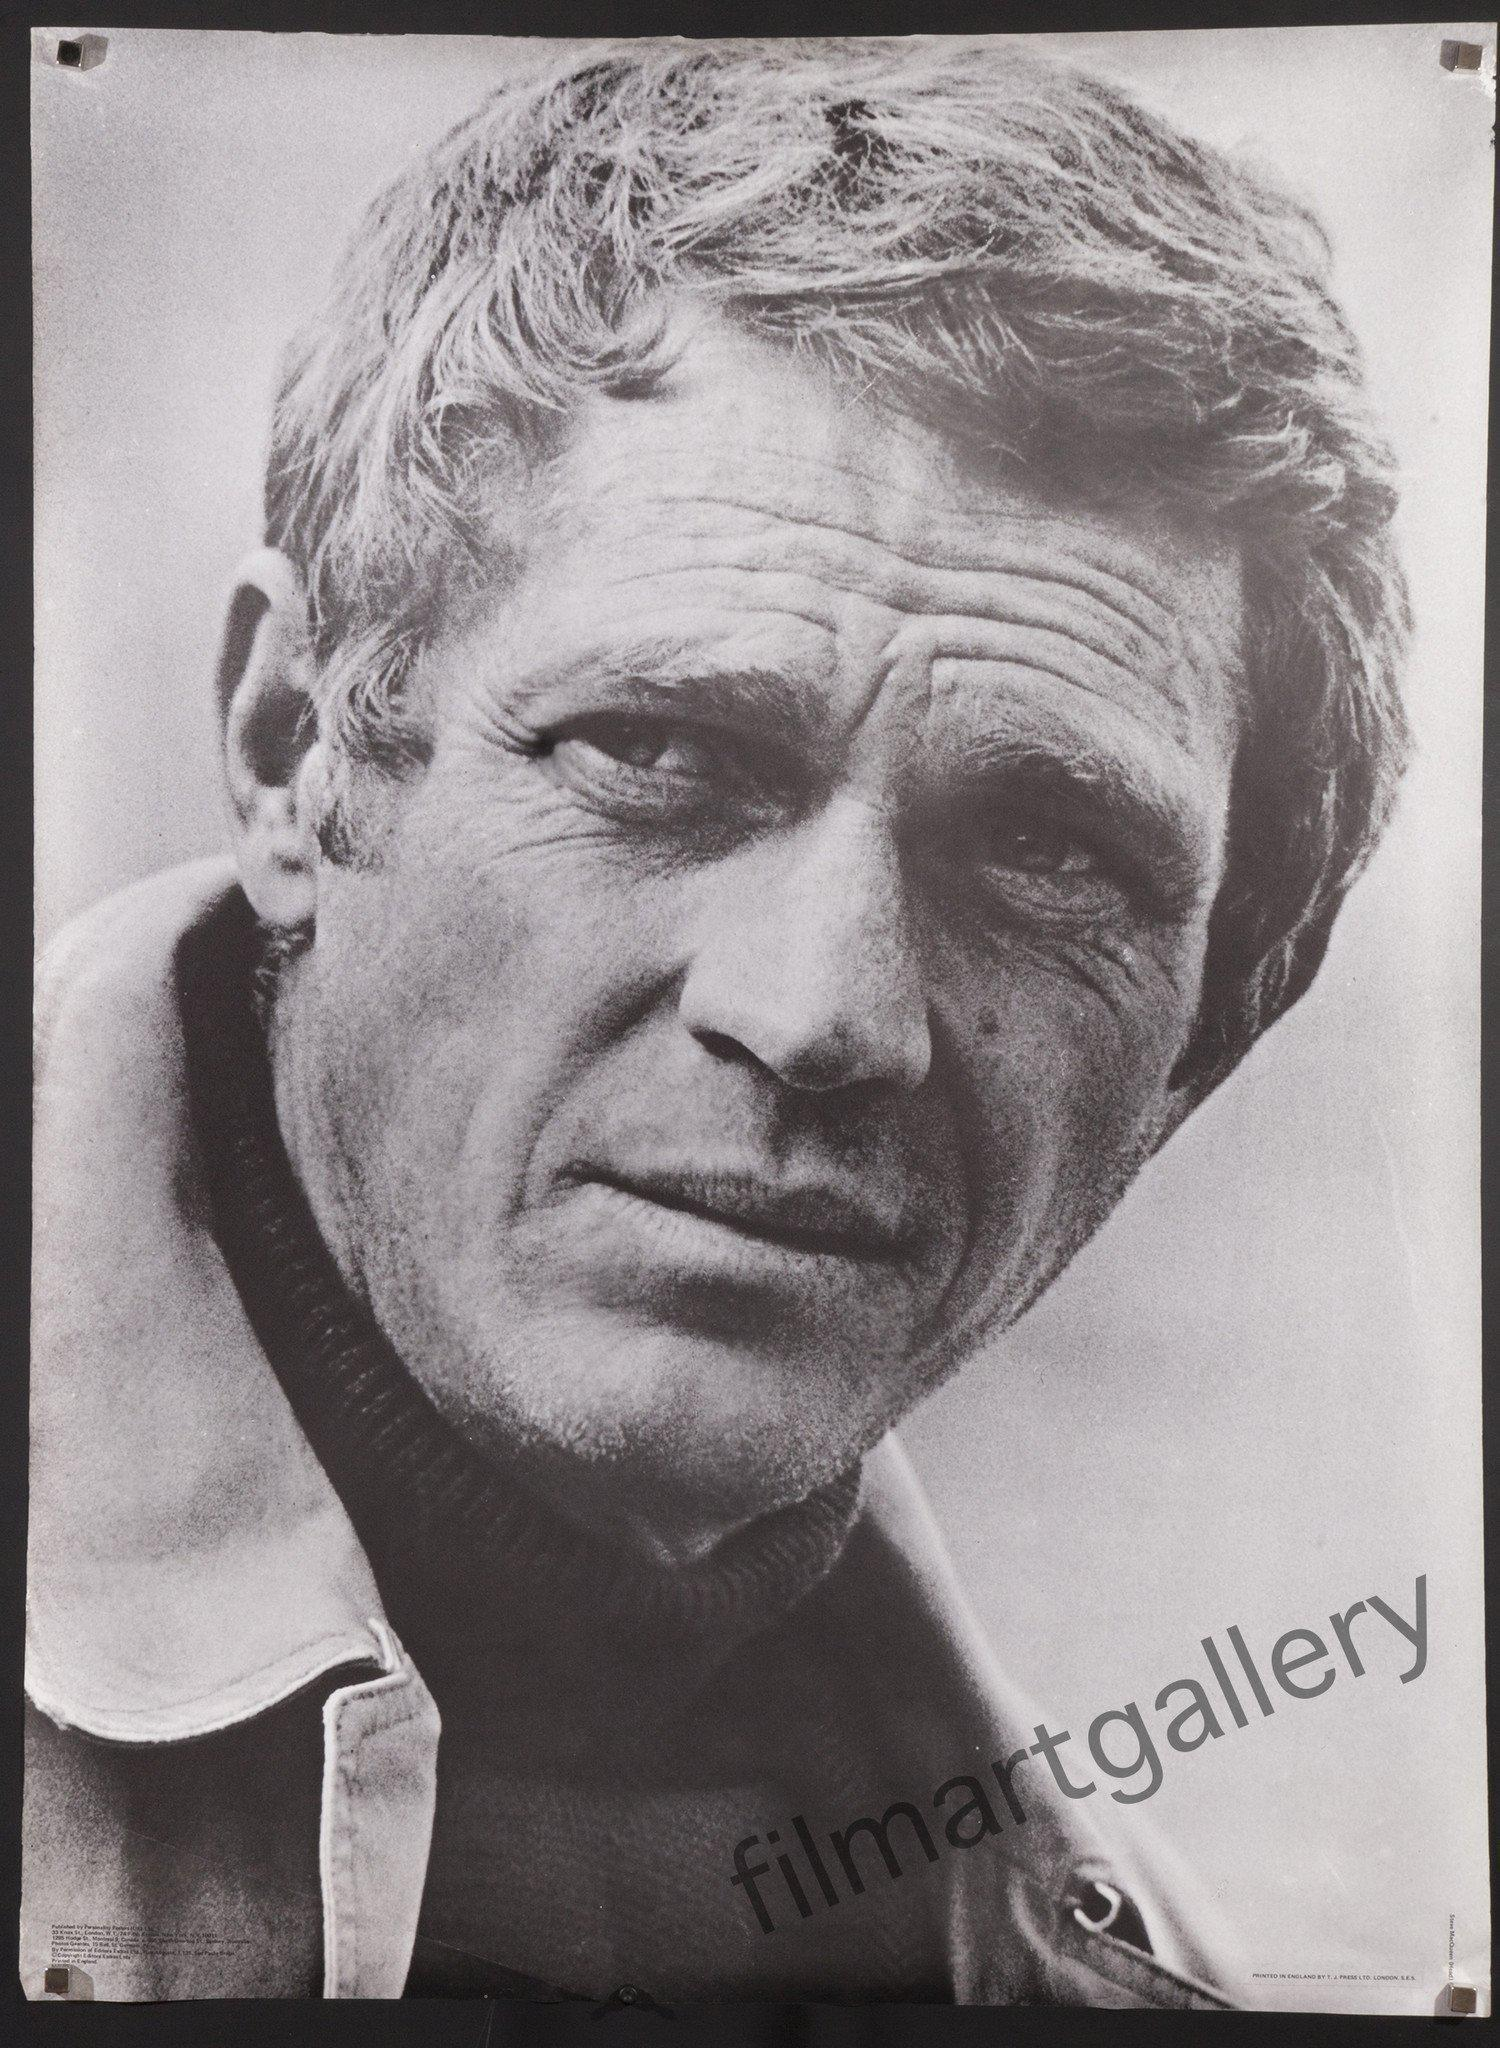 Steve McQueen 1 Sheet (27x41) Original Vintage Movie Poster